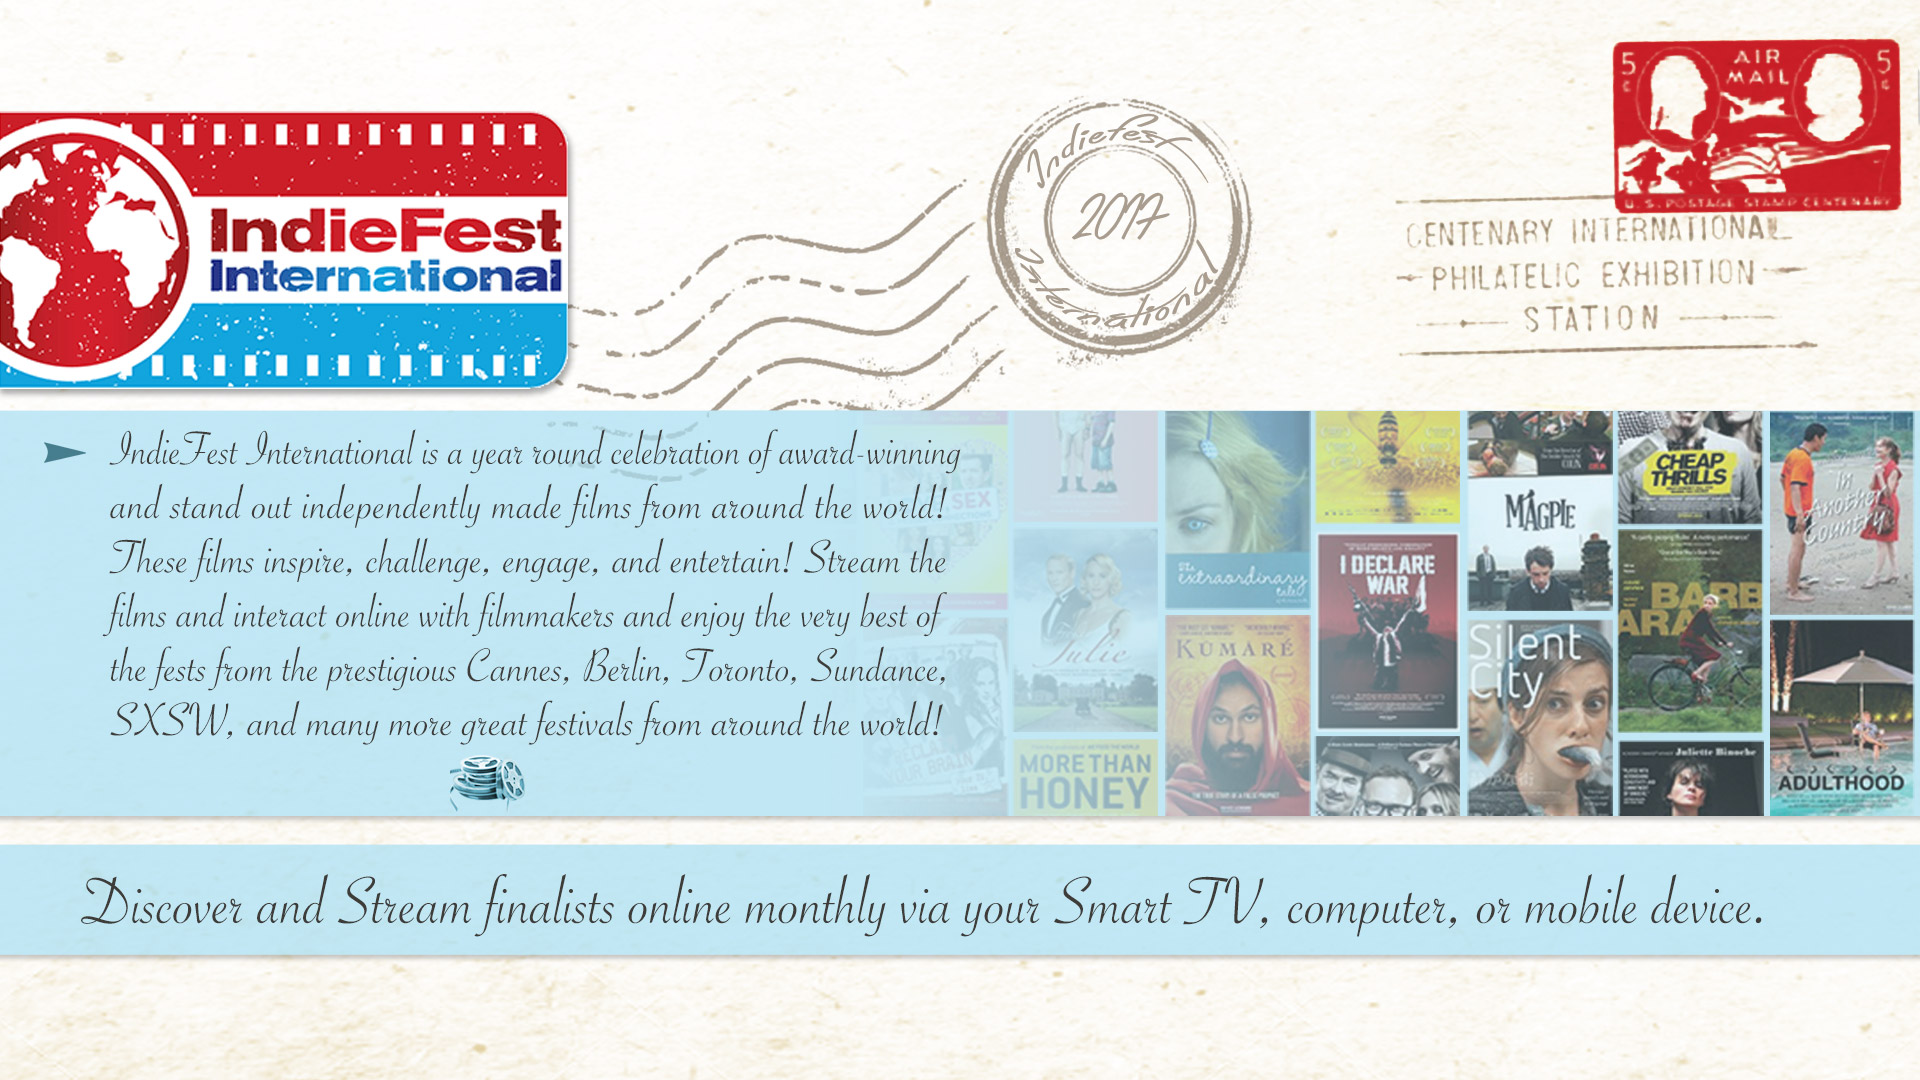 IndieFest International About Page